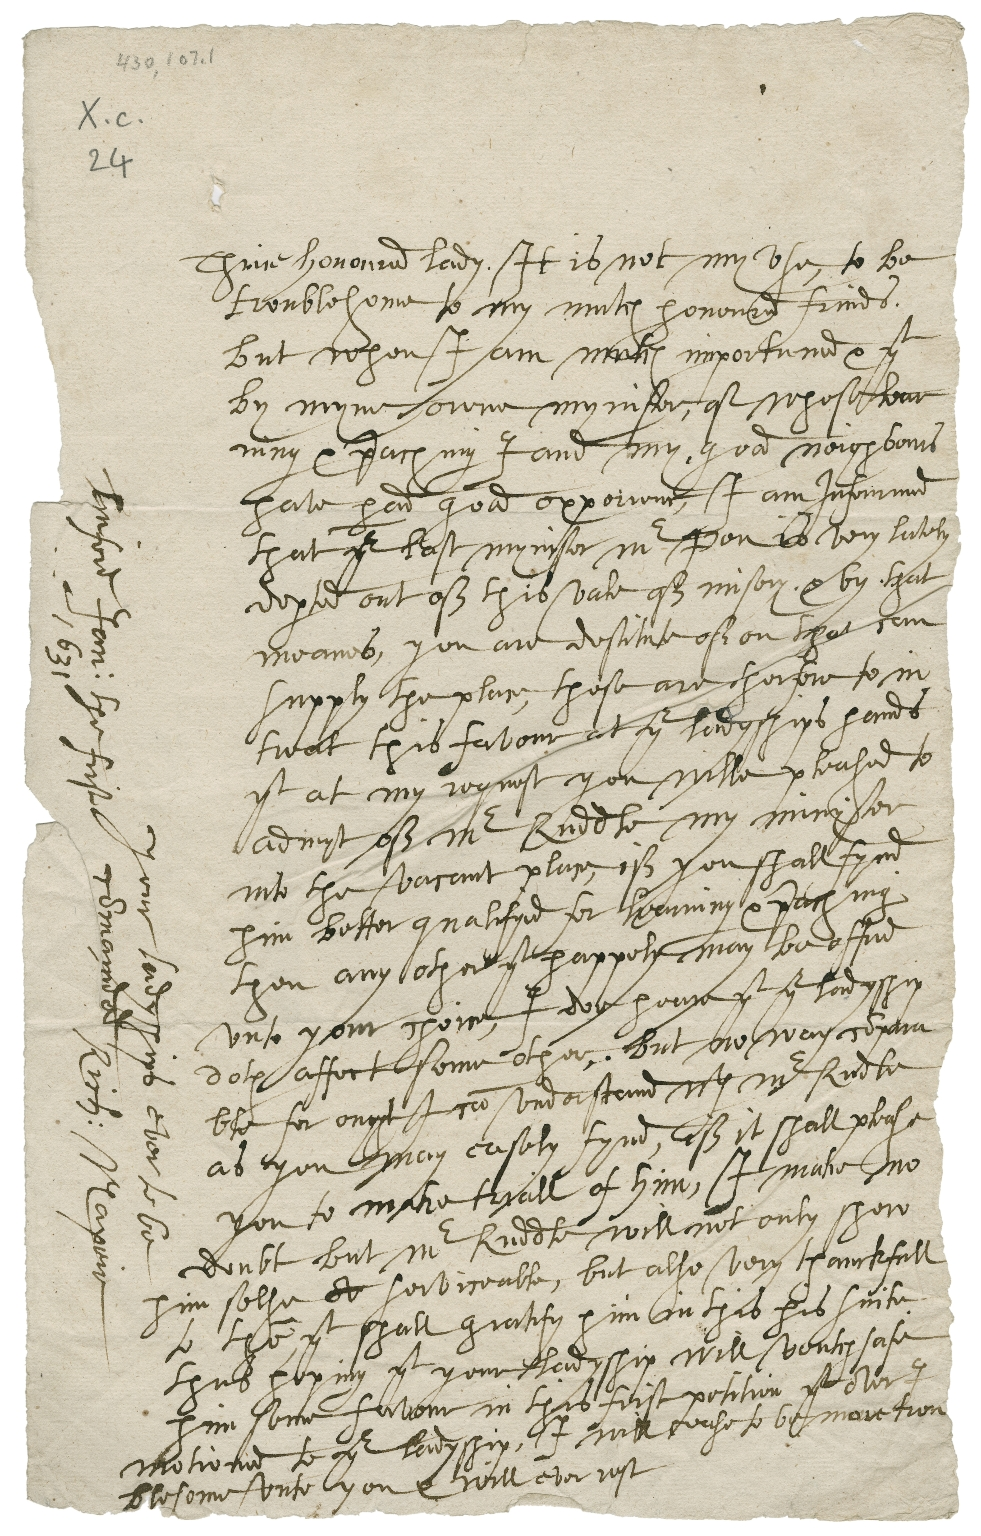 Autograph letter signed from Richard Napier, Linford, Buckinghamshire, to unidentified recipient